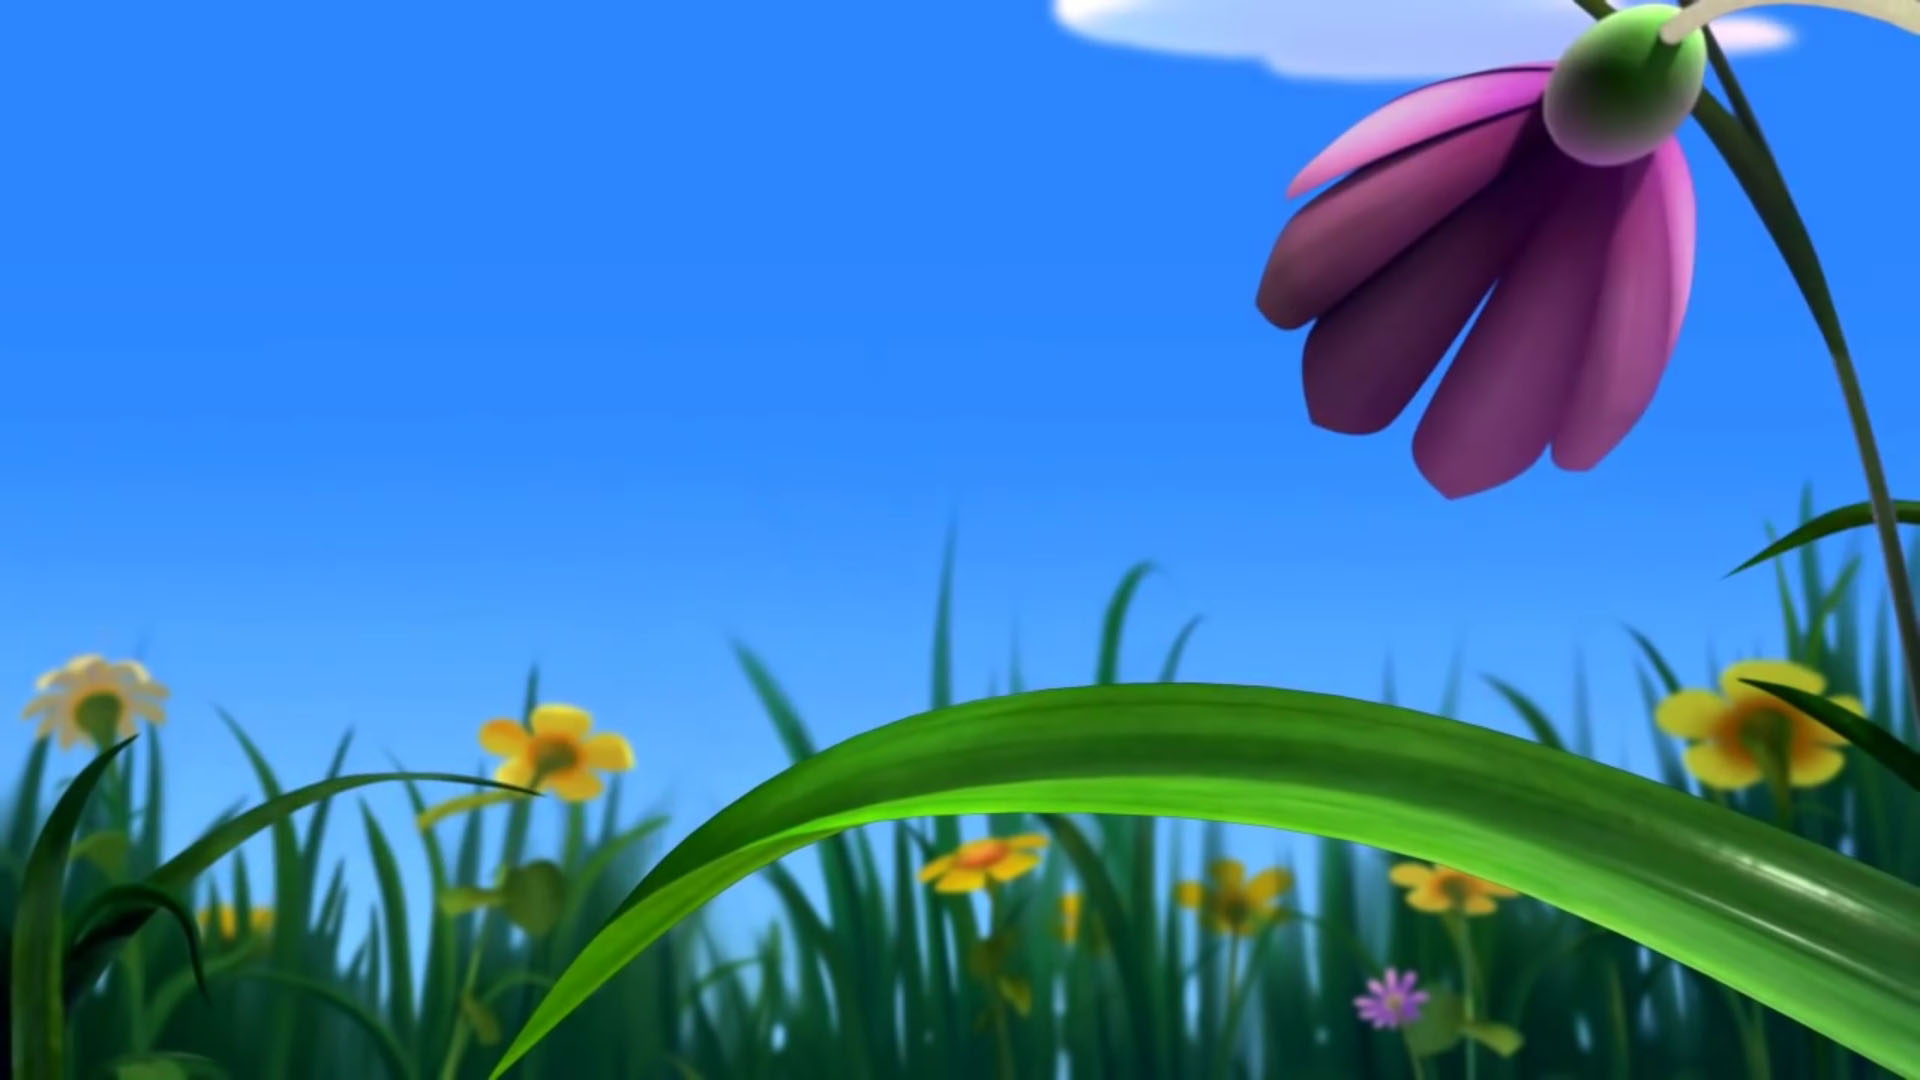 Reliance Animation — Reliance Animation — Big Bees Jr. Preview Image